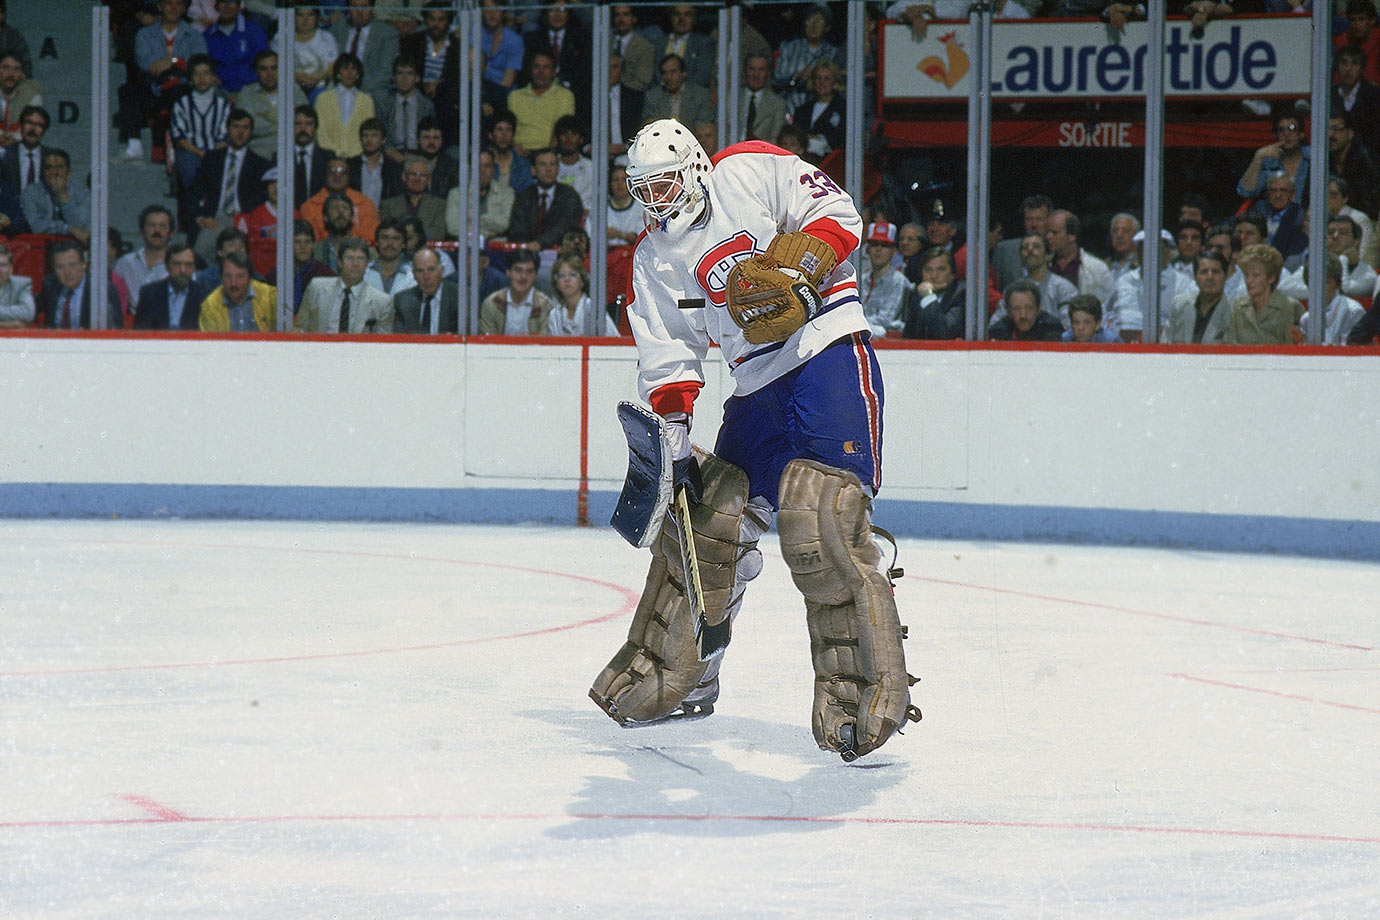 May 9, 1986 — Prince of Wales Conference Finals, Game 5 (Canadiens vs. Rangers)